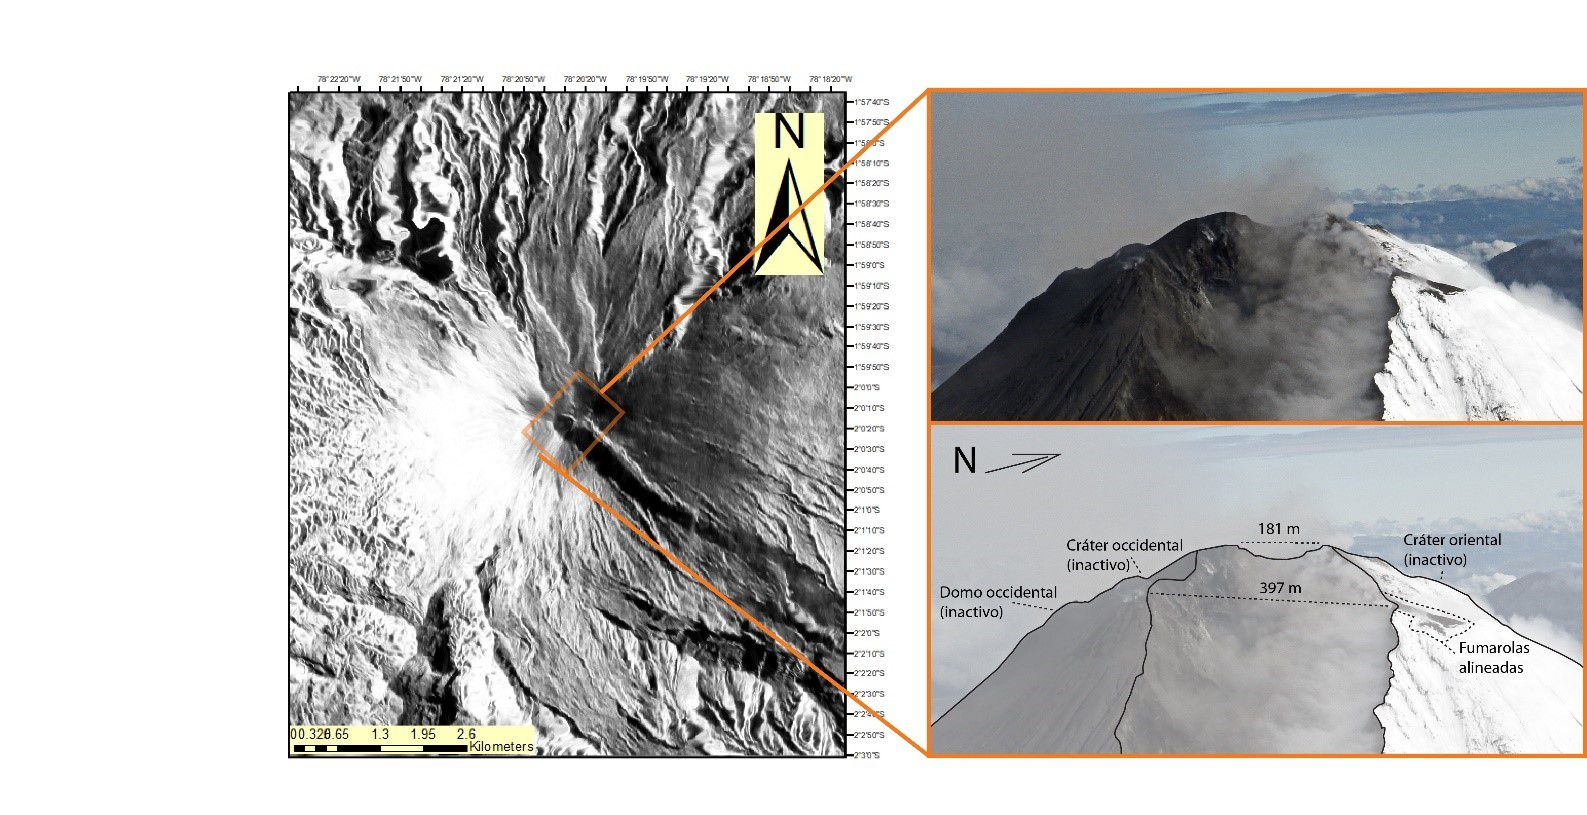 Sangay - Approach to the summit of the Sangay volcano, with an illustration which highlights its new morphological characteristics. - Photo: M Almeida, IG EPN.